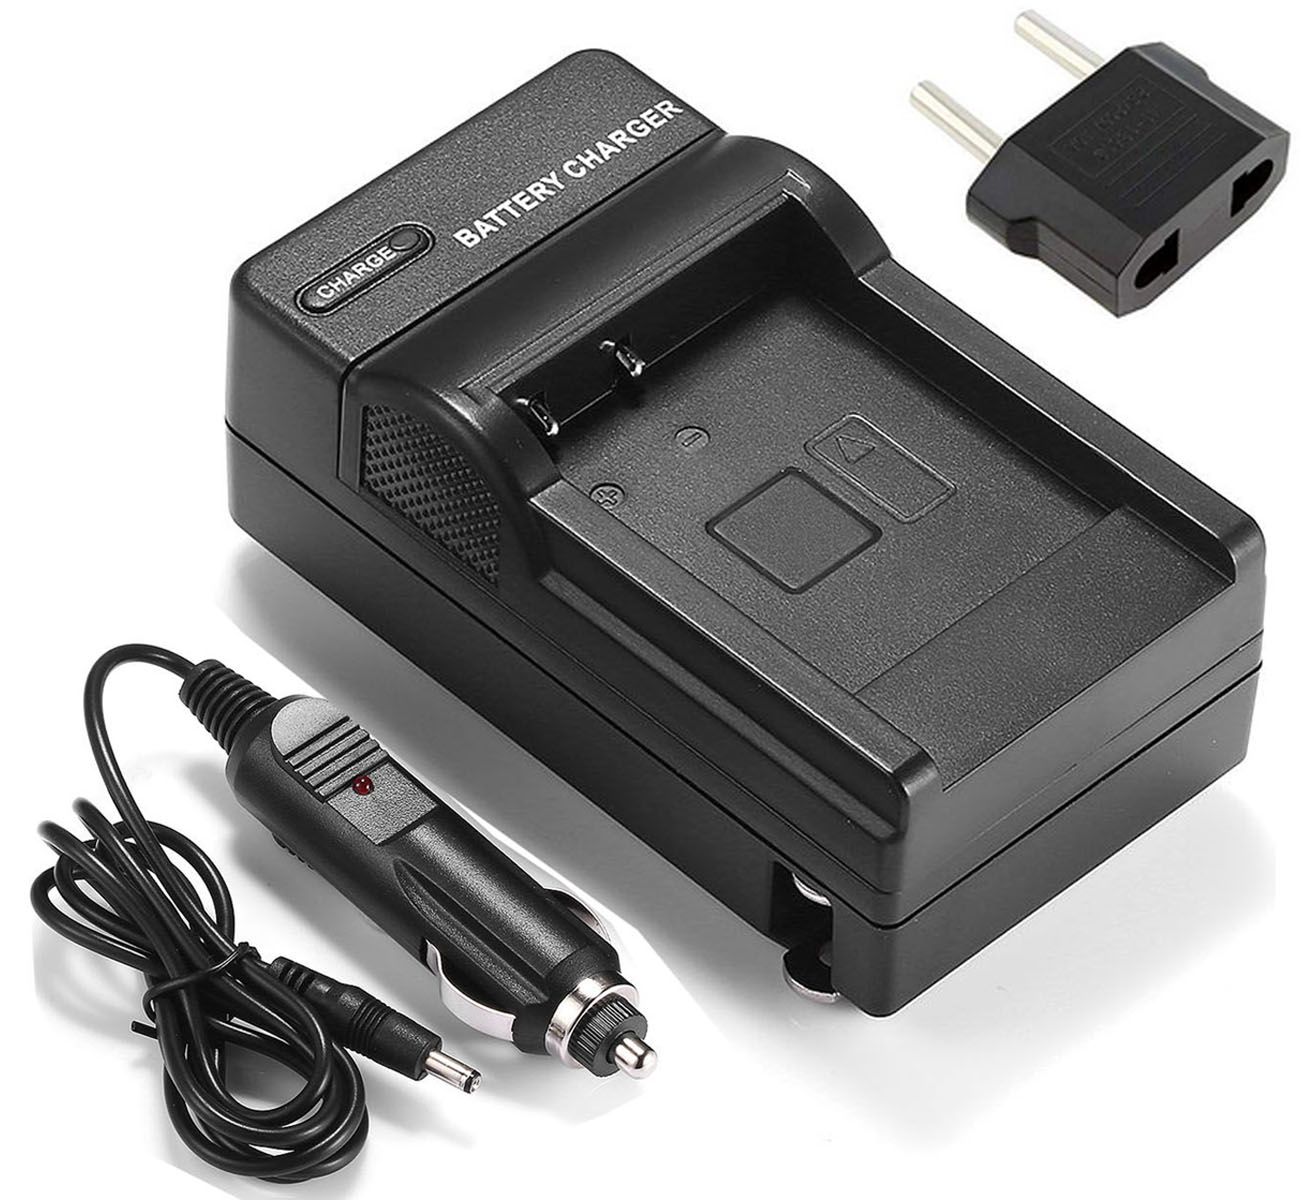 SCL550 Digital Video Camcorder SCL530 SCL540 Battery Charger for Samsung SCL520